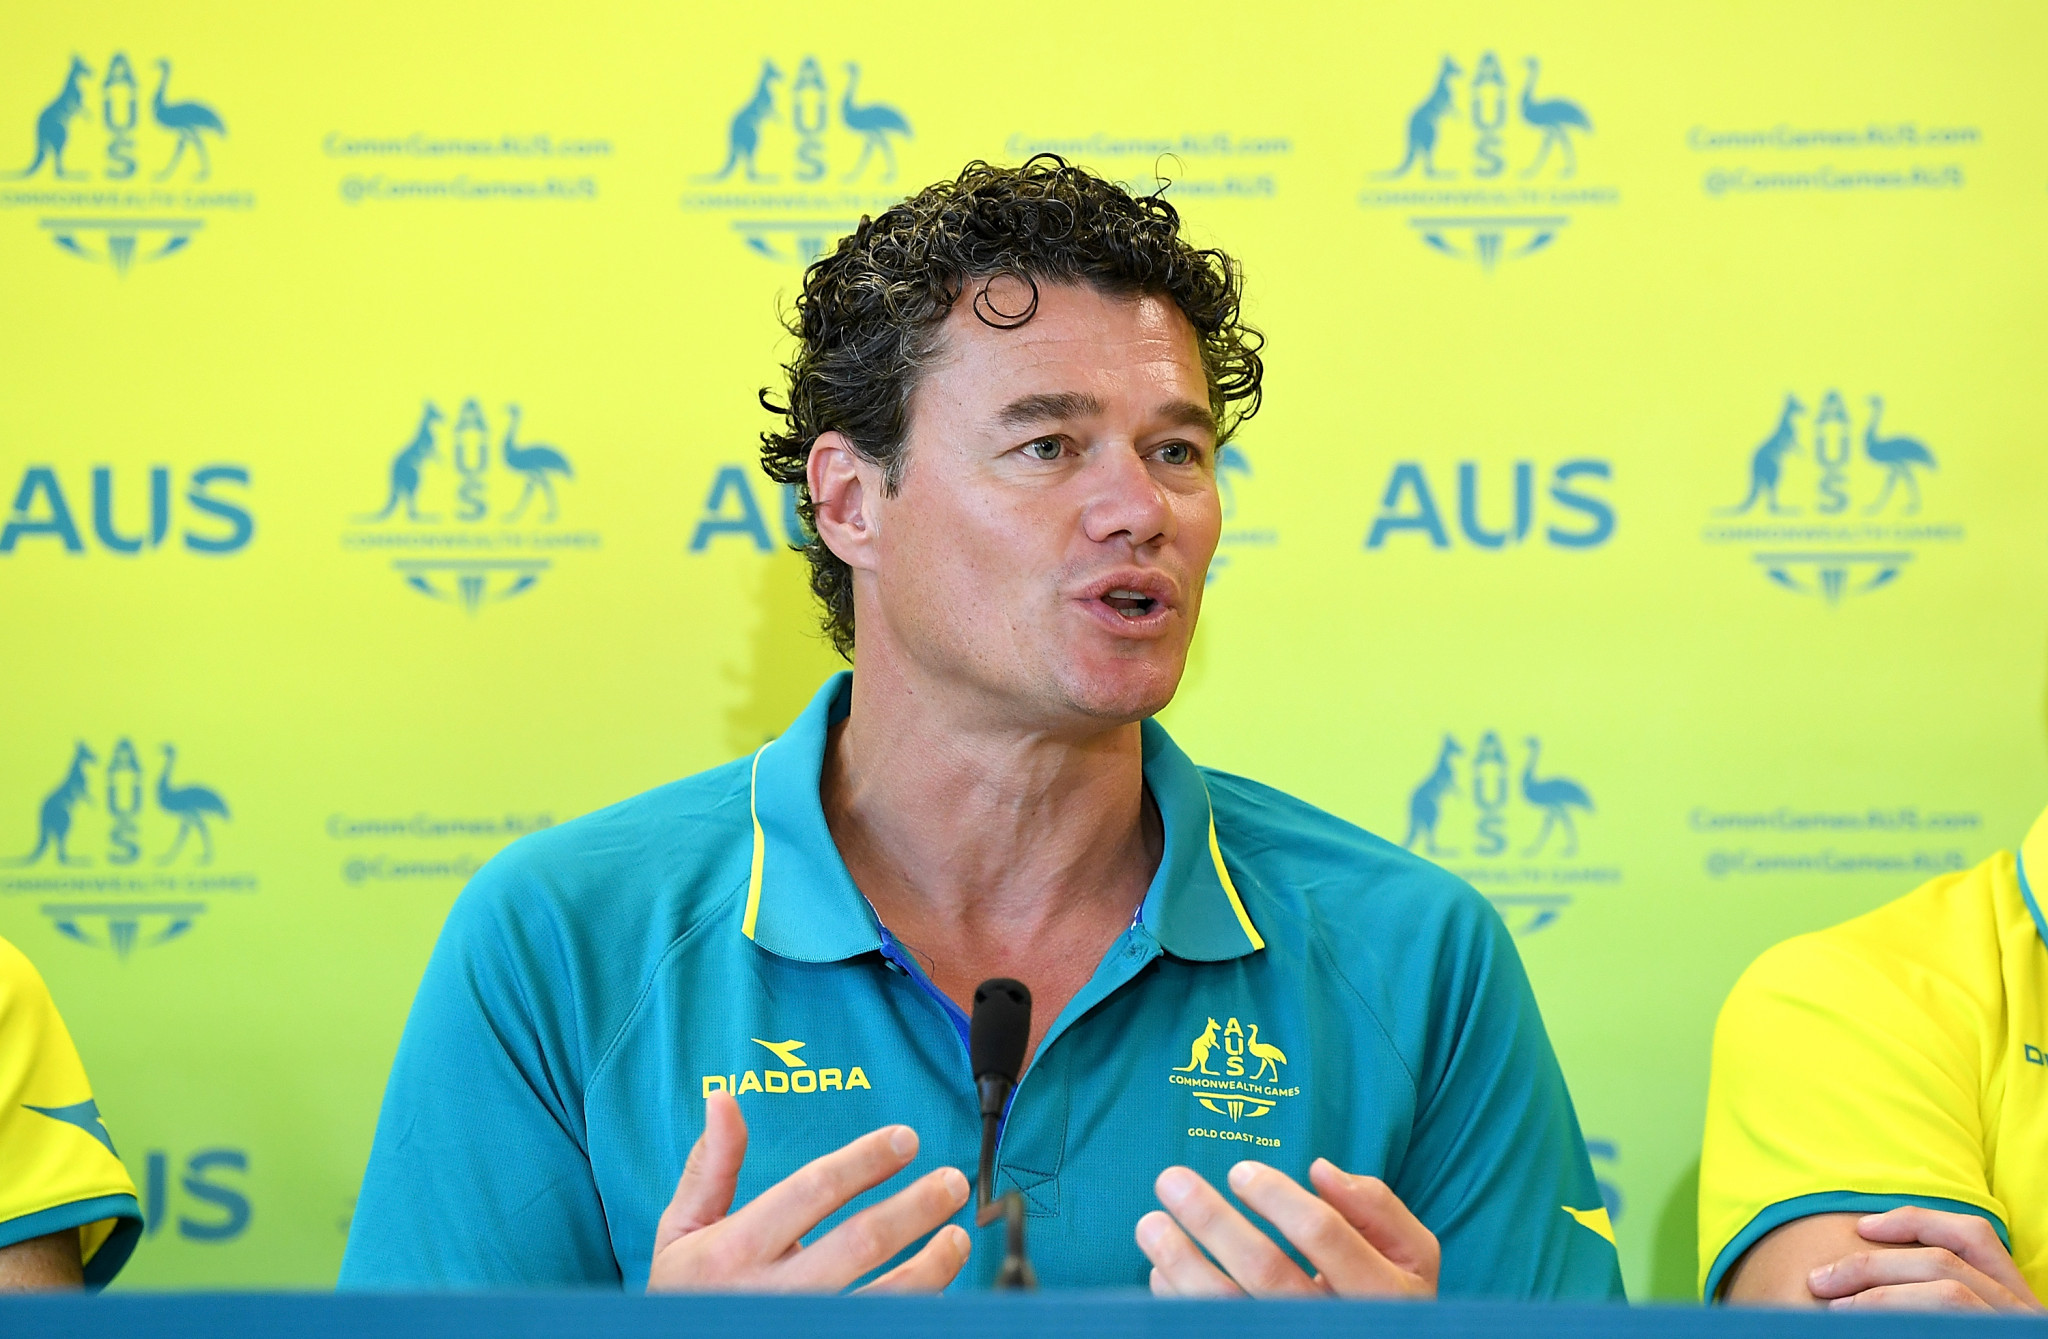 Taylor to become Swimming Australia head coach for Tokyo 2020 after Verhaeren steps down